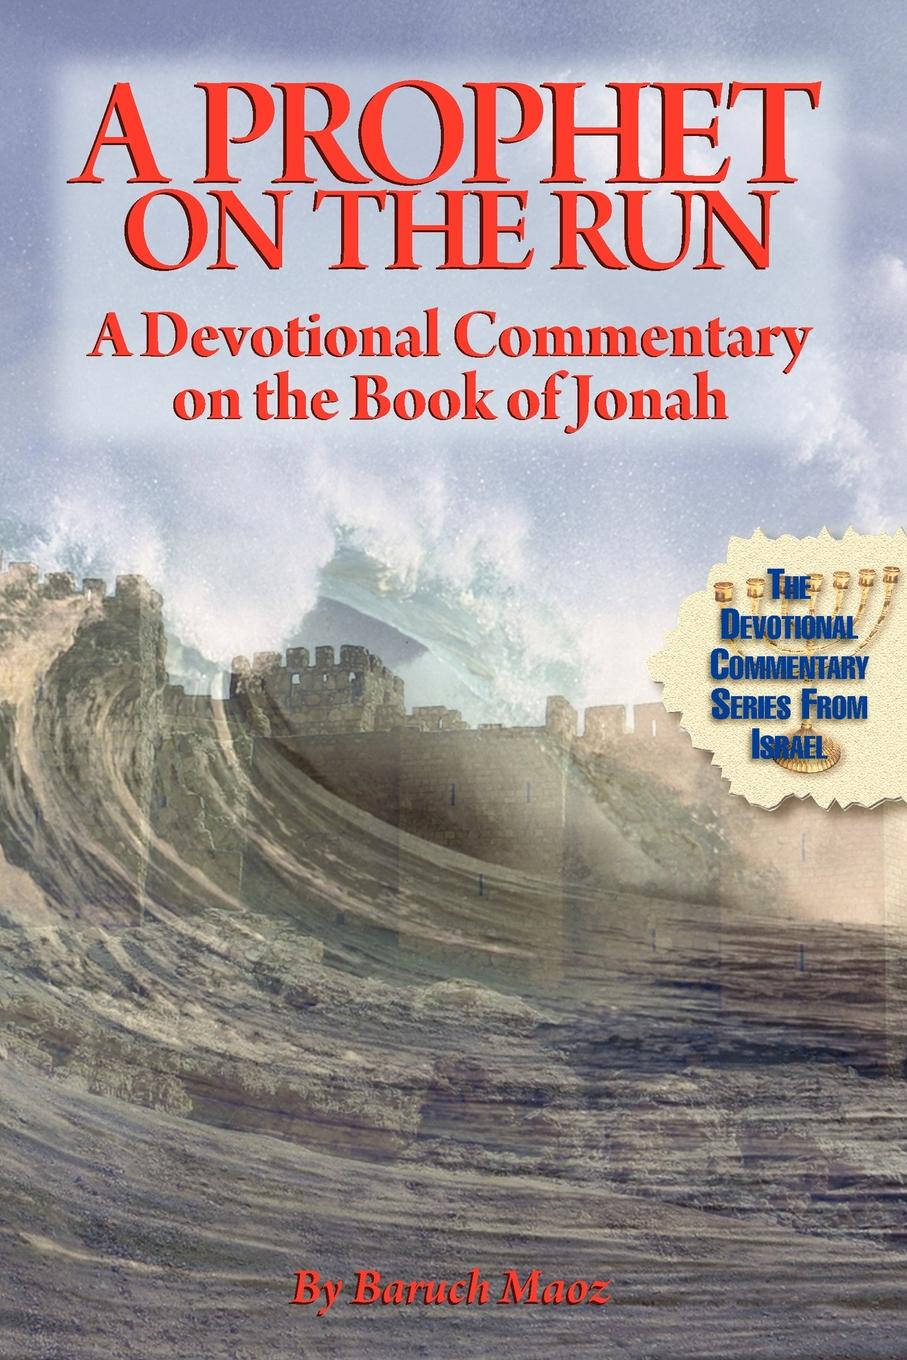 Baruch Maoz A Prophet on the Run run this 72